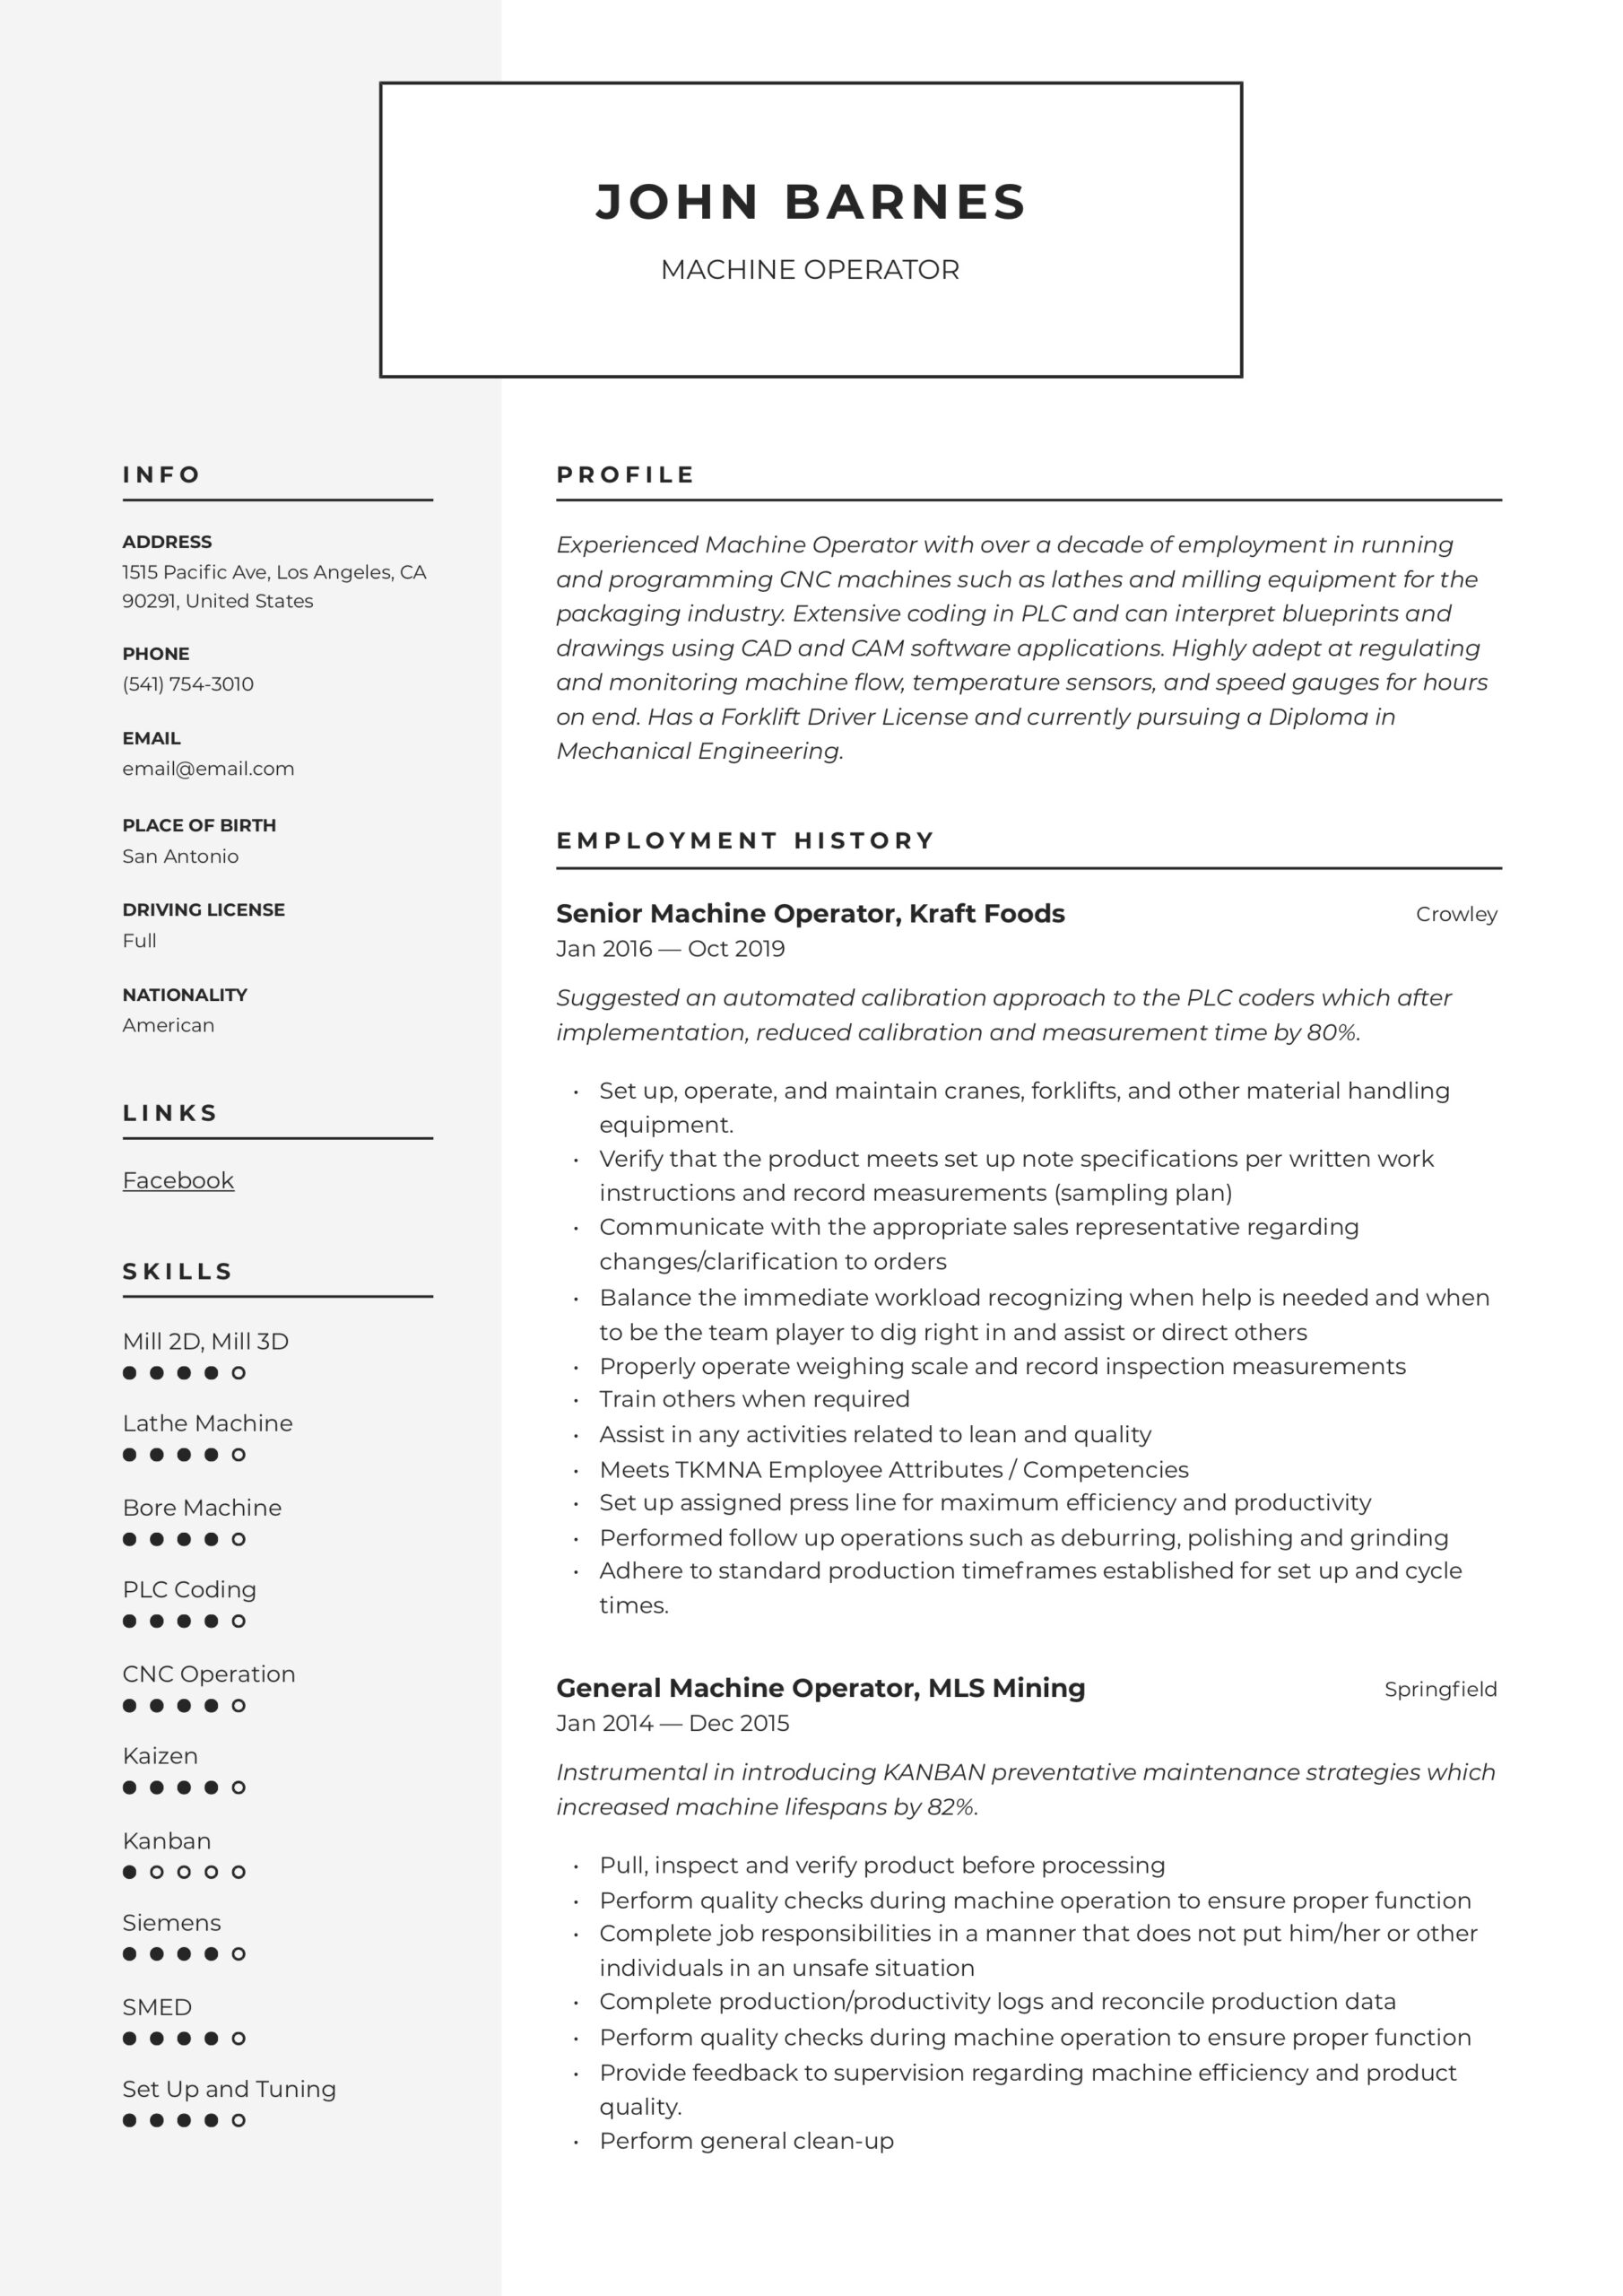 machine operator resume writing guide templates press sample self introduction business Resume Press Operator Resume Sample